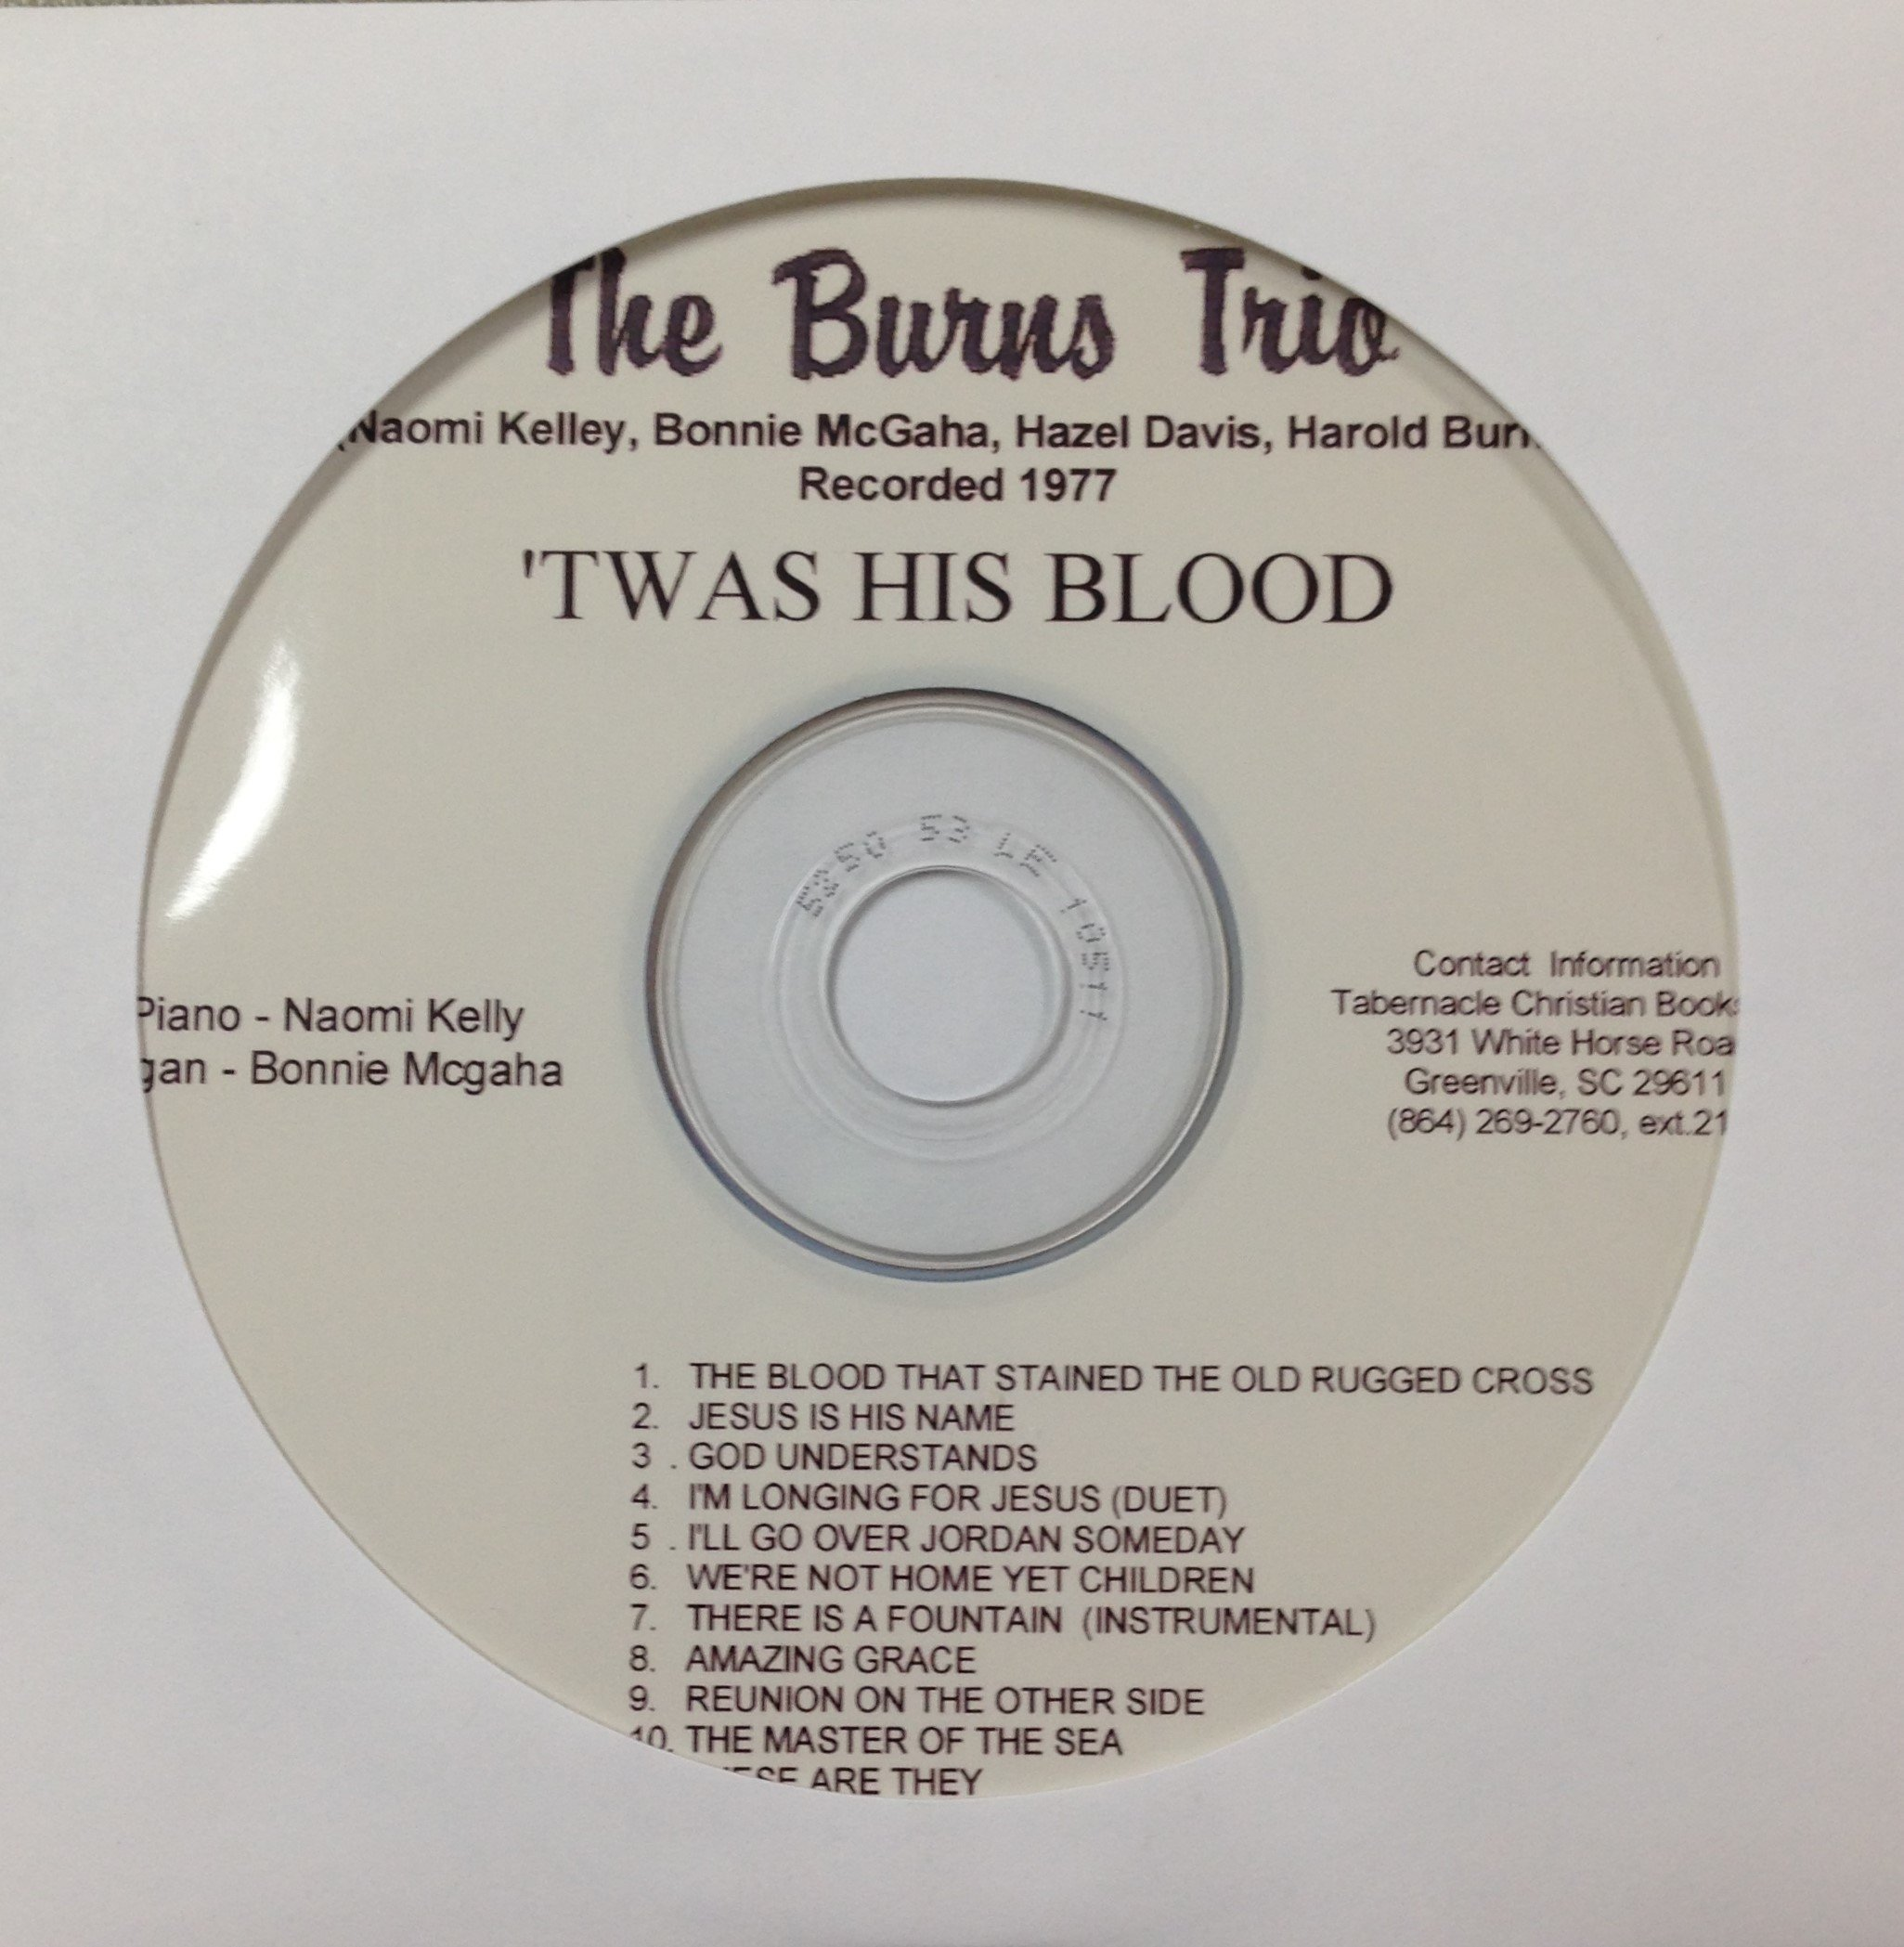 The Burns Trio:  'Twas His Blood  CD 00042